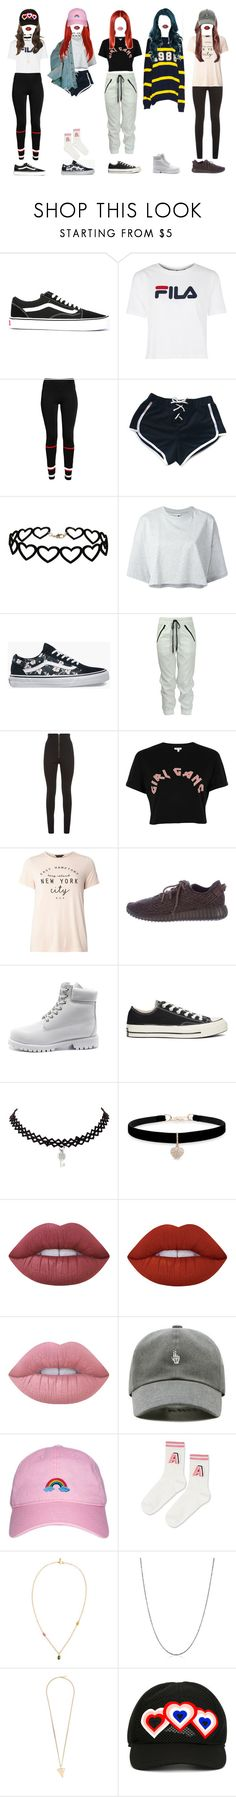 """""""[ dance practice ] G-3 _ MY LOVE"""" by xxeucliffexx ❤ liked on Polyvore featuring Vans, Fila, Givenchy, My Mum Made It, Miss Selfridge, Puma, Balmain, River Island, Dorothy Perkins and adidas Originals"""